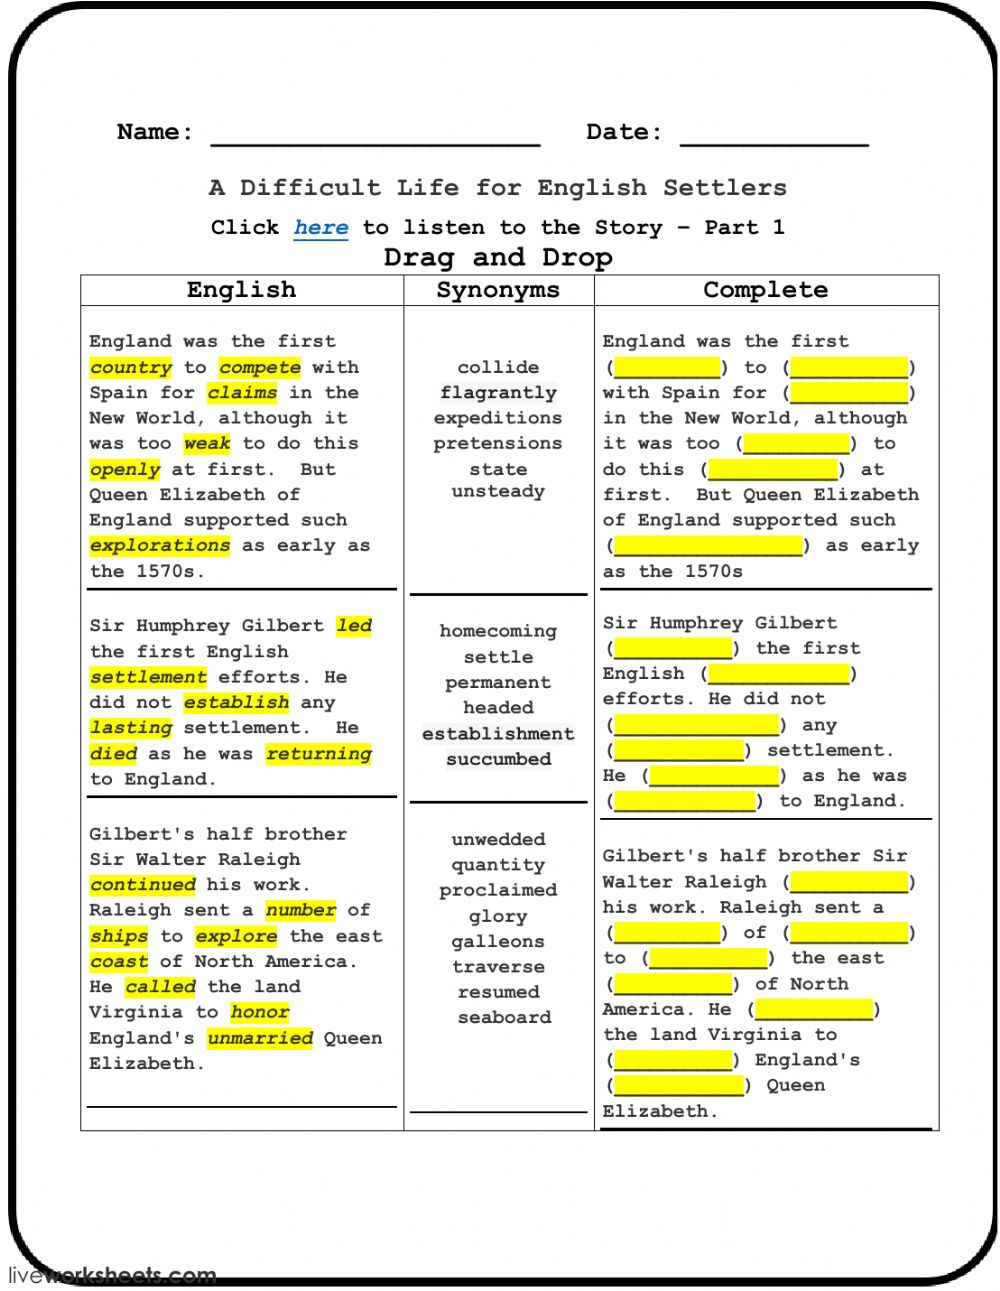 A Difficult Life For English Settlers Part 1 Interactive Worksheet